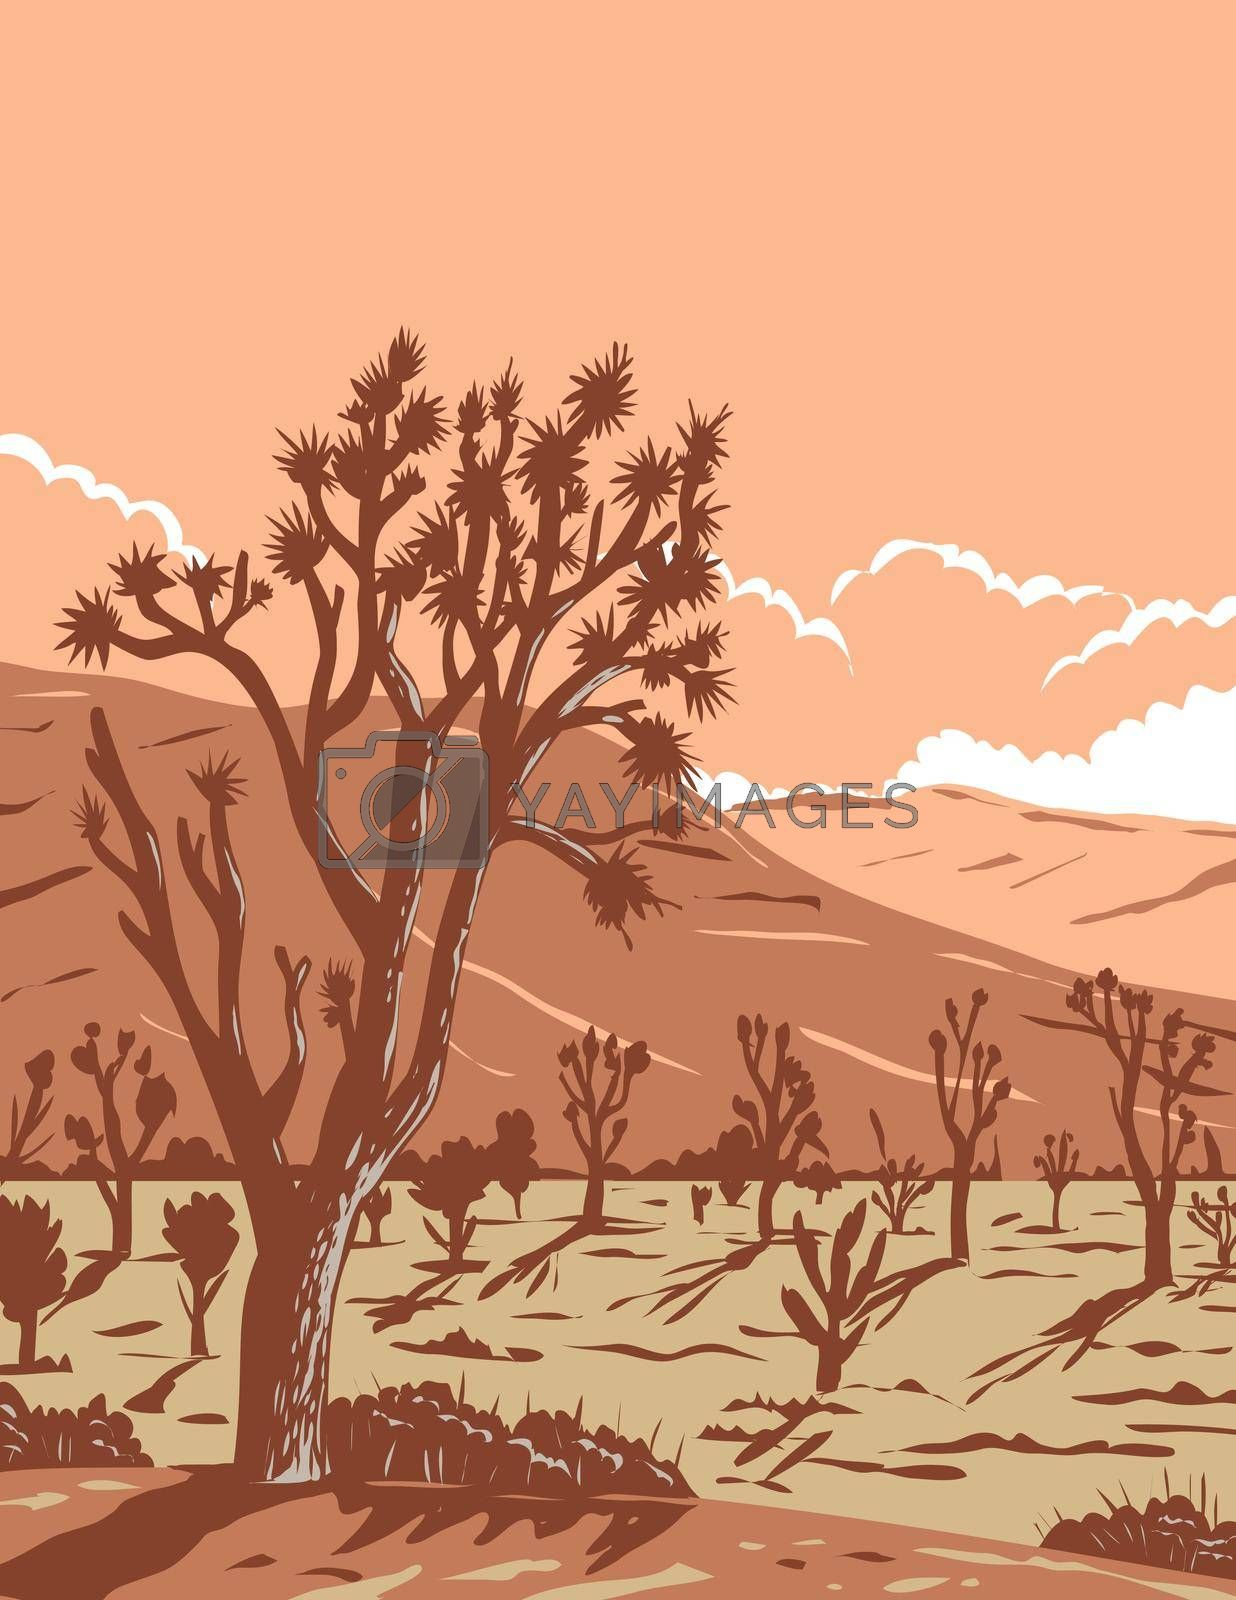 WPA poster art of the Joshua tree in the Mojave Desert, an arid rain-shadow desert within southeastern California and southern Nevada in works project administration or federal art project style.